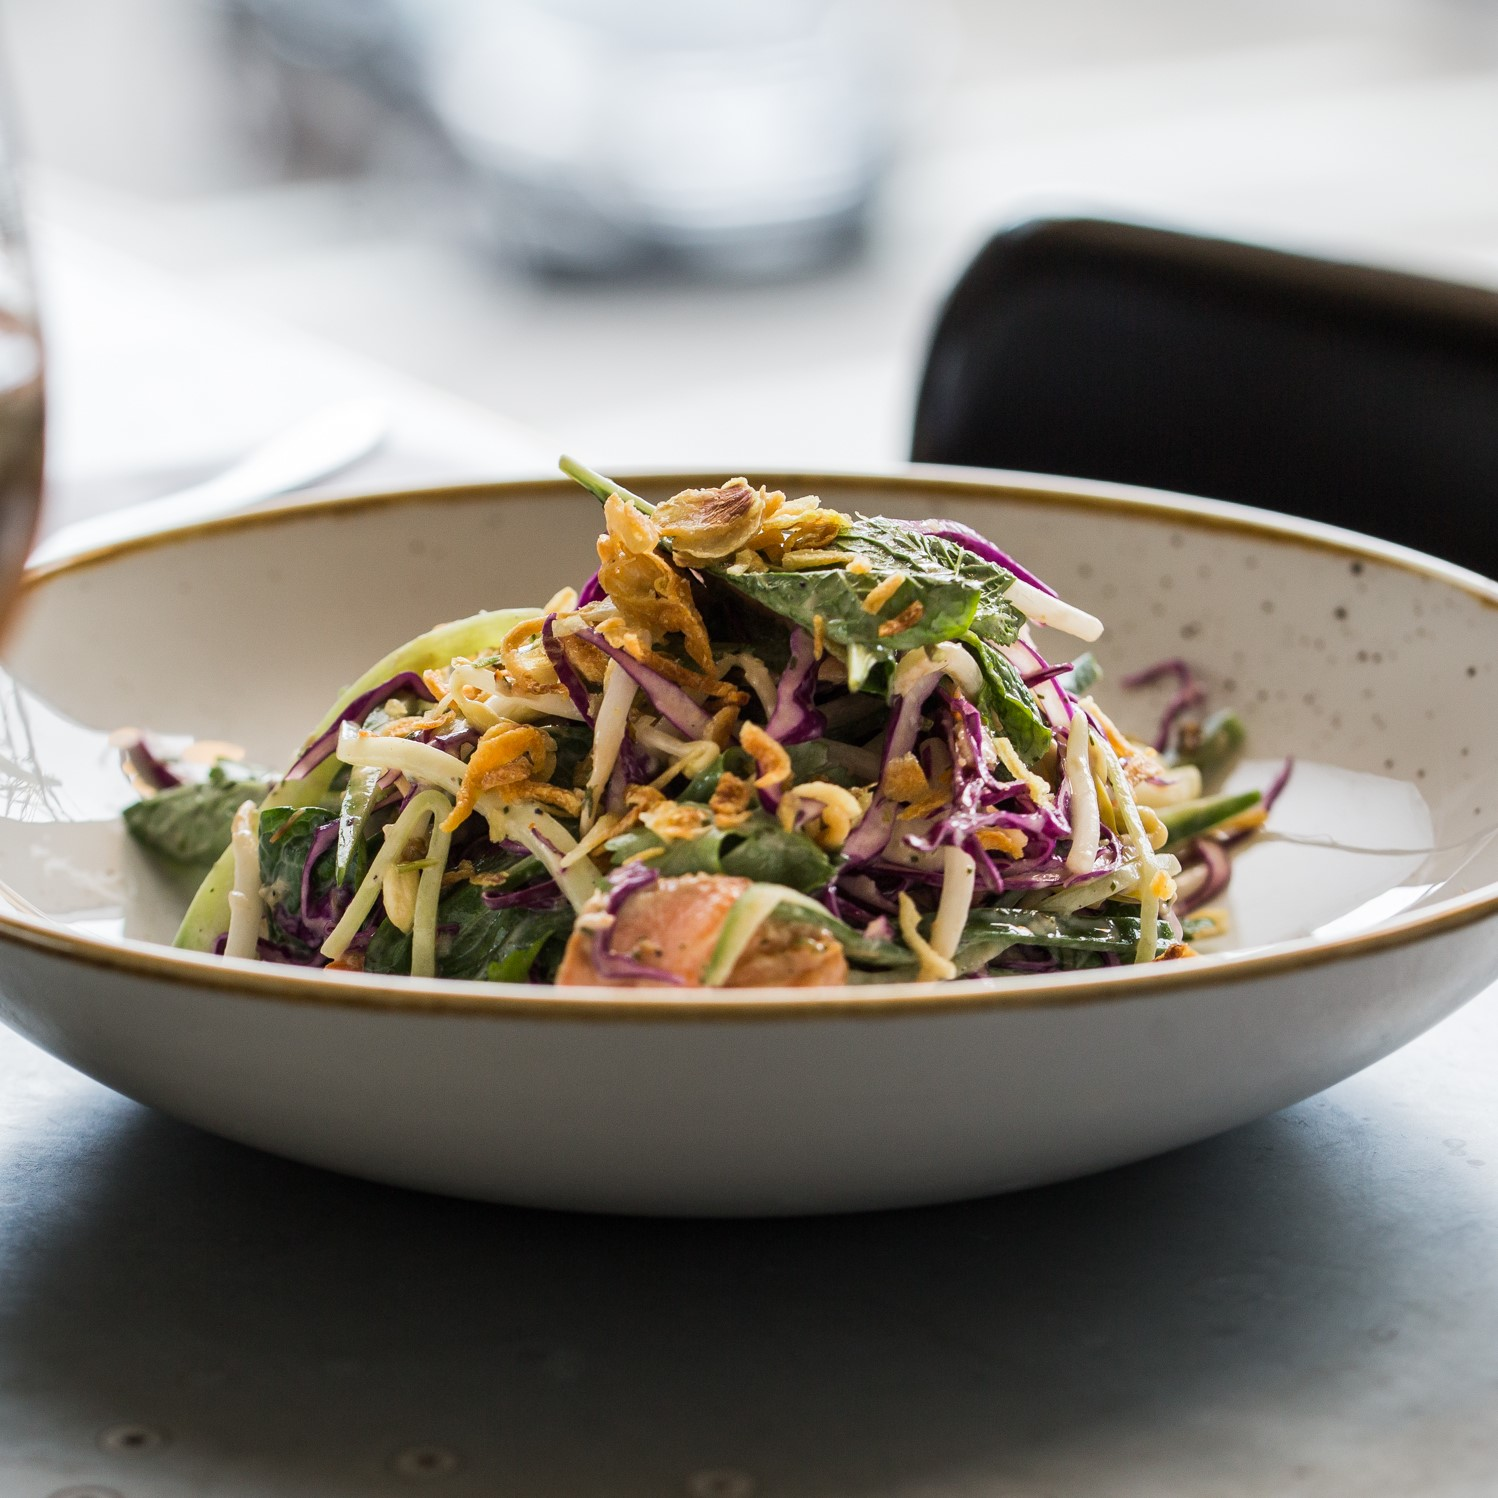 Grilled Ocean Trout | red cabbage, cucumber, bean sprouts, Asian herbs, mirin dressing (V & VE options available) | 23